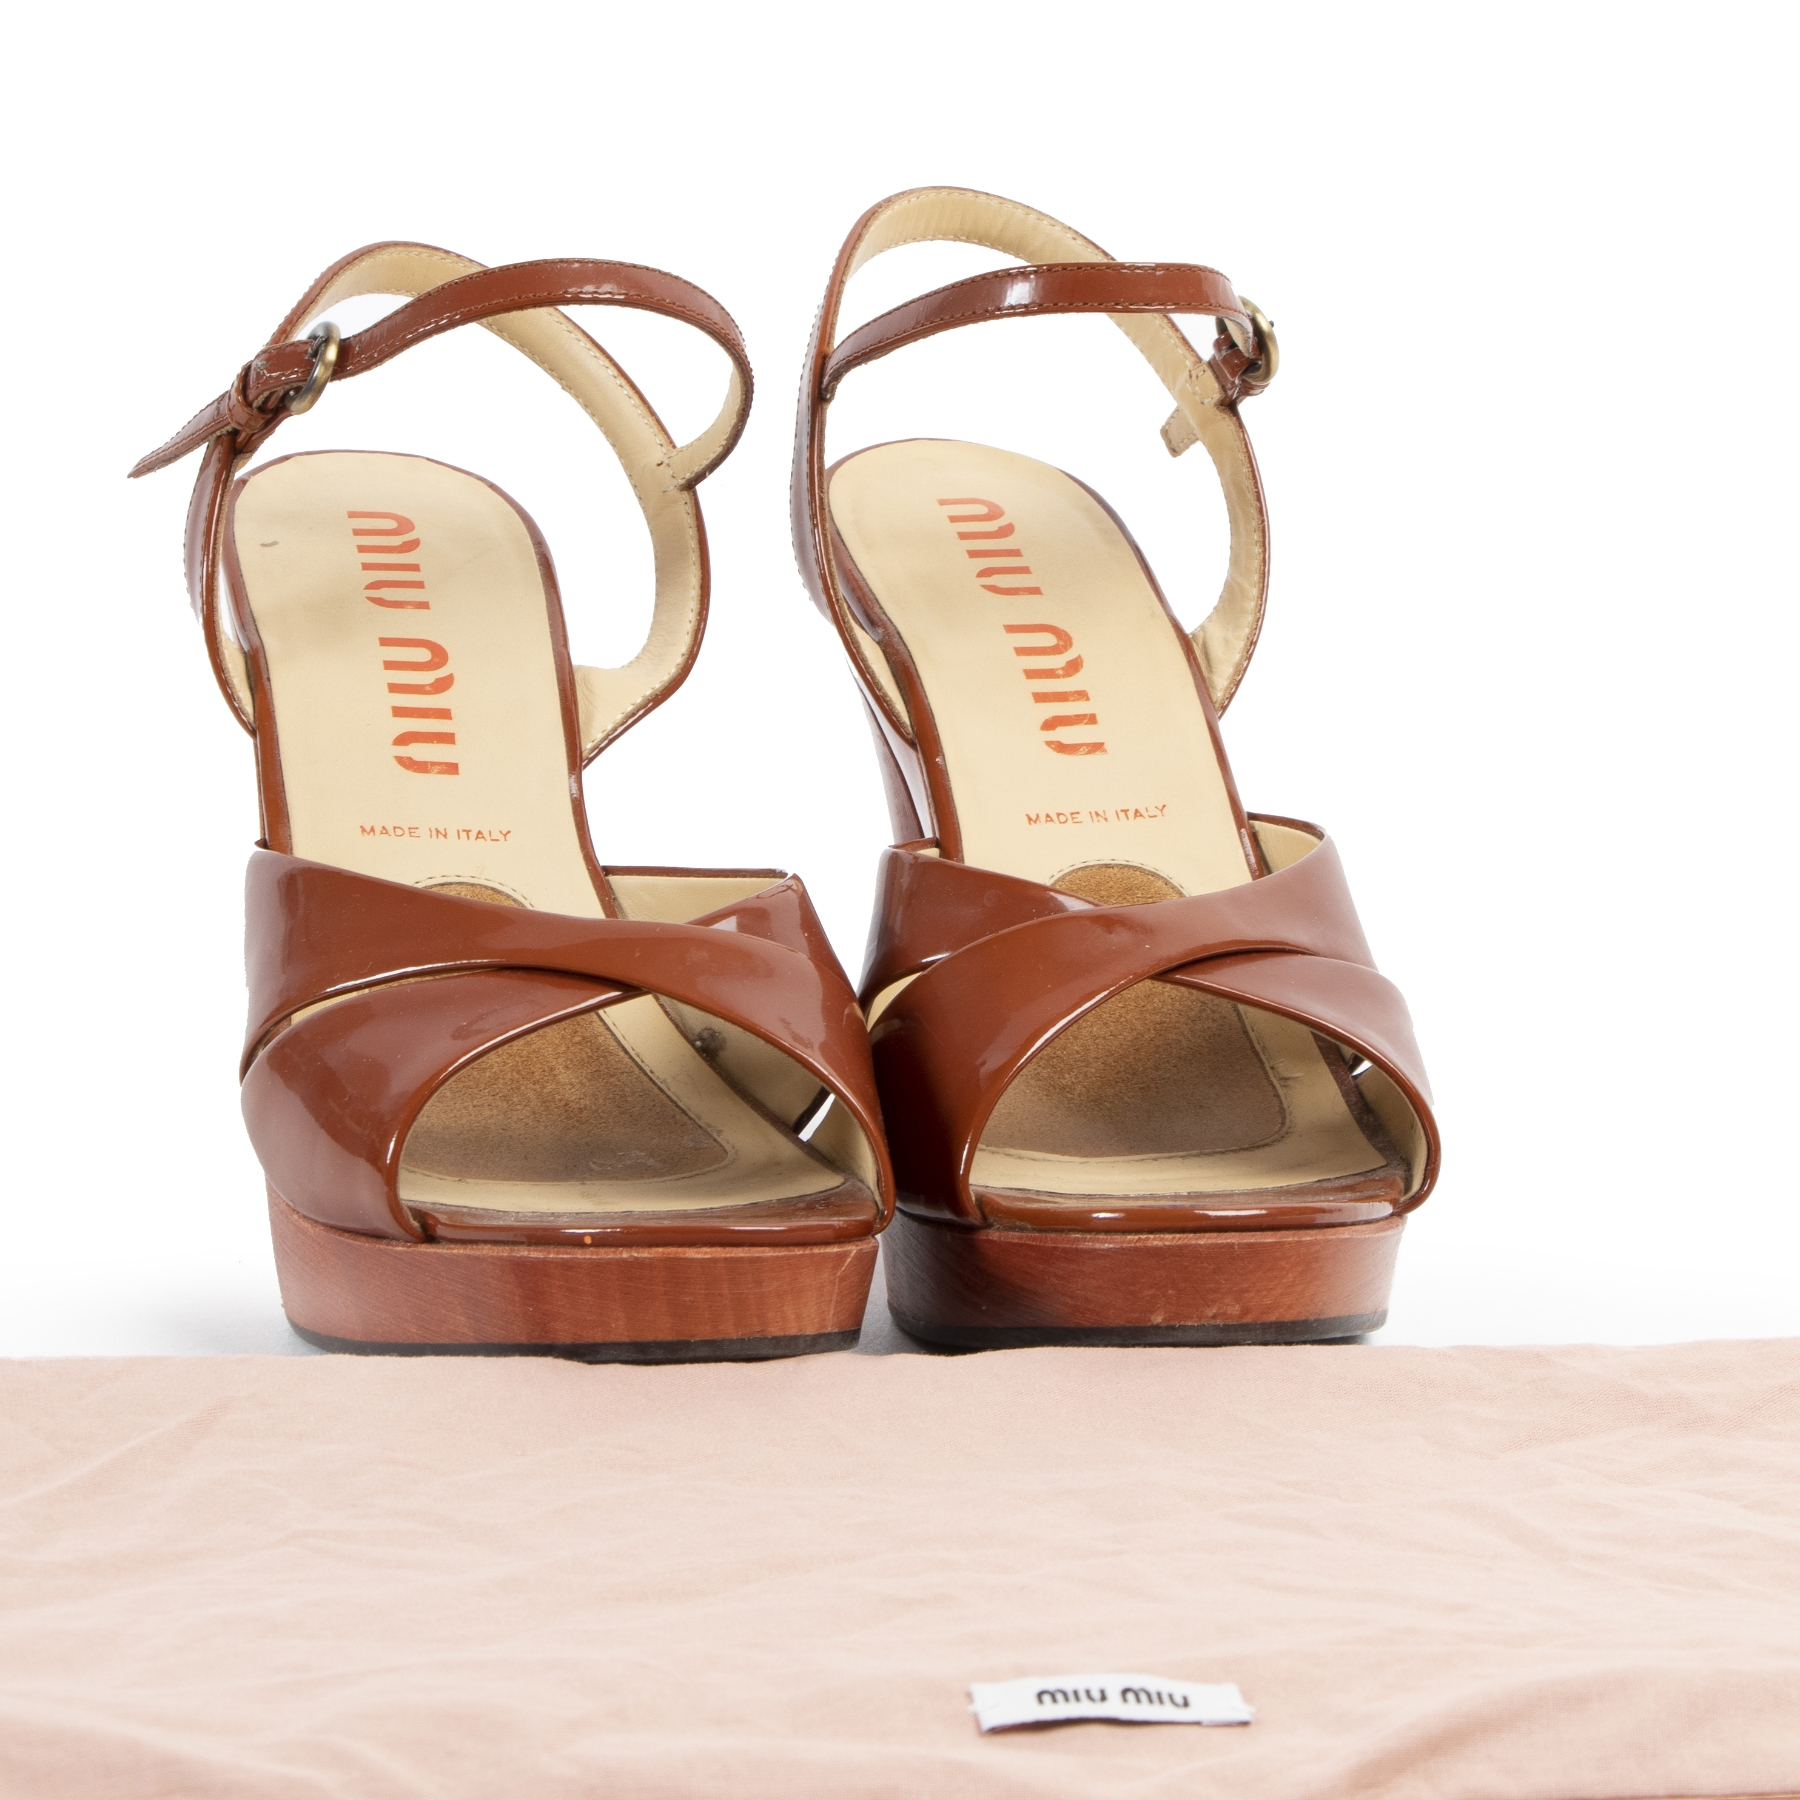 Miu Miu Brown Strappy Sandal Heels with Peep Toe